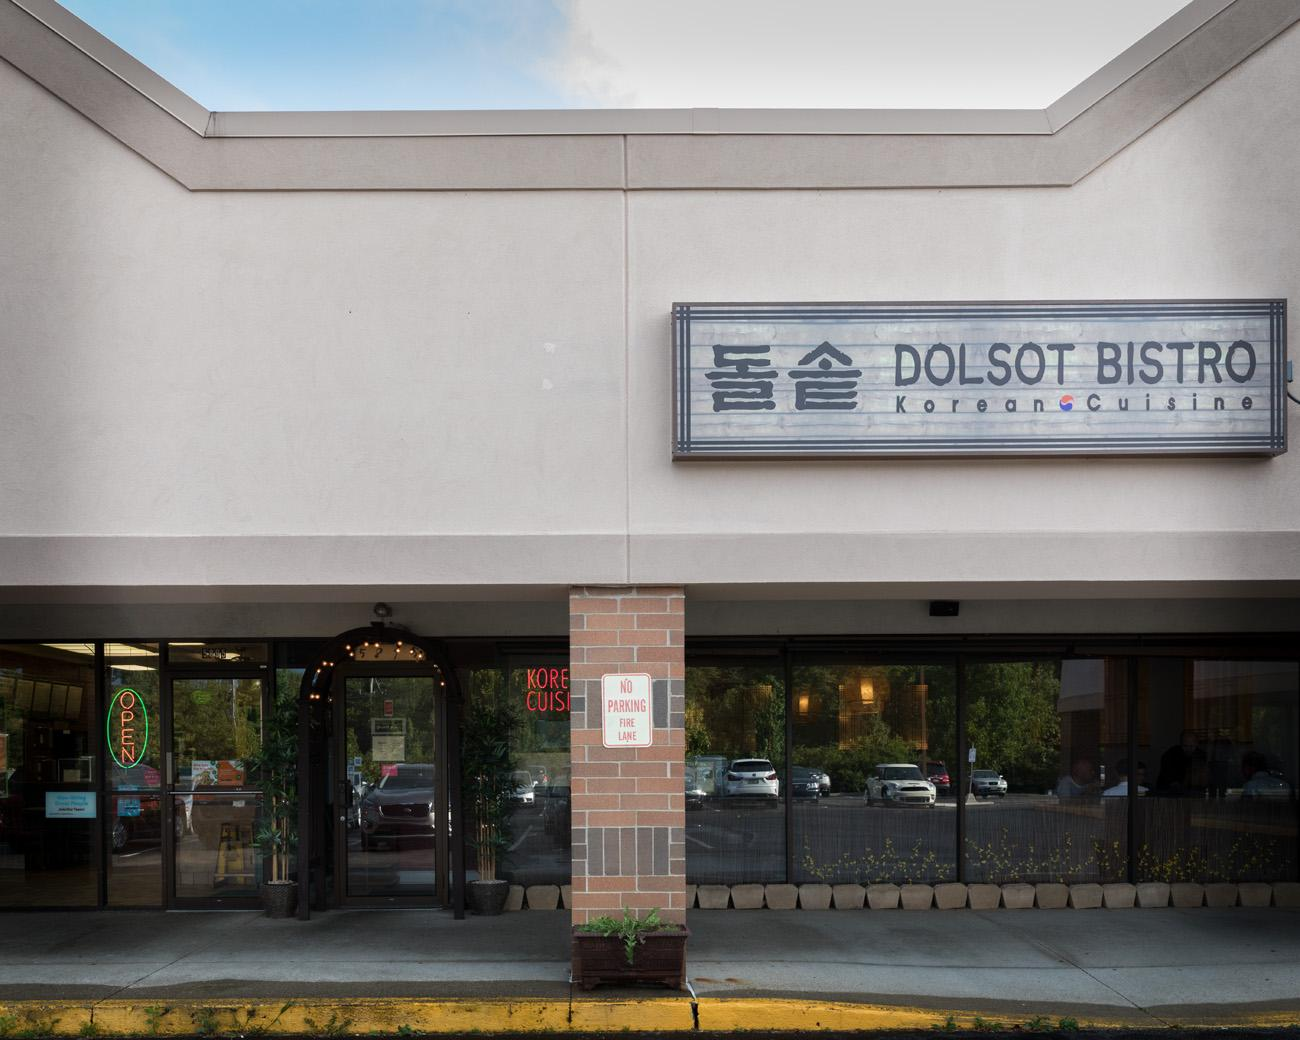 "Dolsot Bistro opened in 2016, delivering some of the most creative dolsot (""stone bowl"") dishes and Korean-style barbecue in town. The Blue Ash restaurant, bedecked in Korean-inspired decor, serves an elevated, authentic Korean menu to hungry guests. ADDRESS: 5893 PfeifferRoad (45242) / Image: Marlene Rounds // Published 9.18.18"